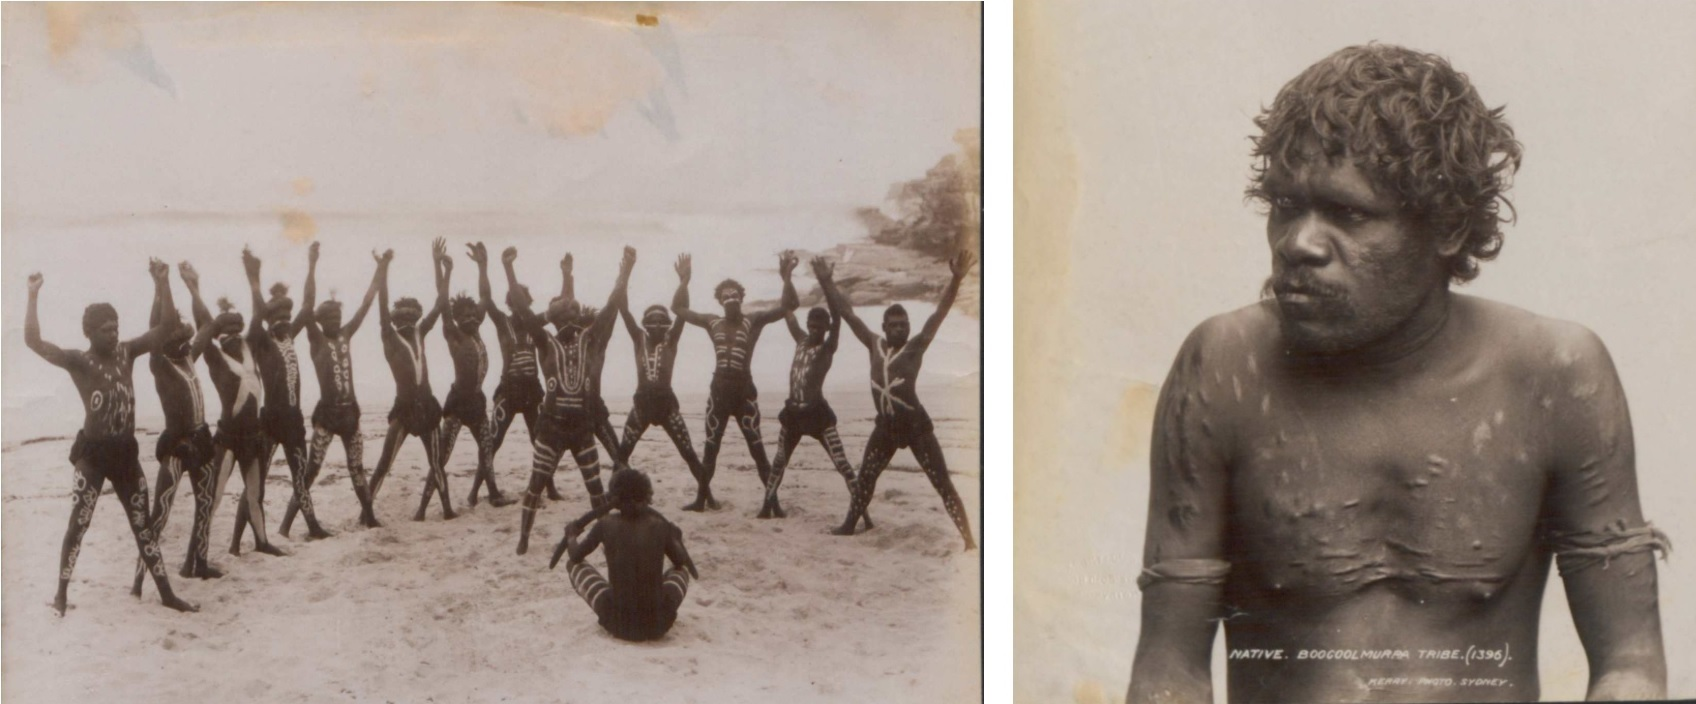 Indigenous populations: exploring early encounters, subjugation and protection in Gale Primary Sources